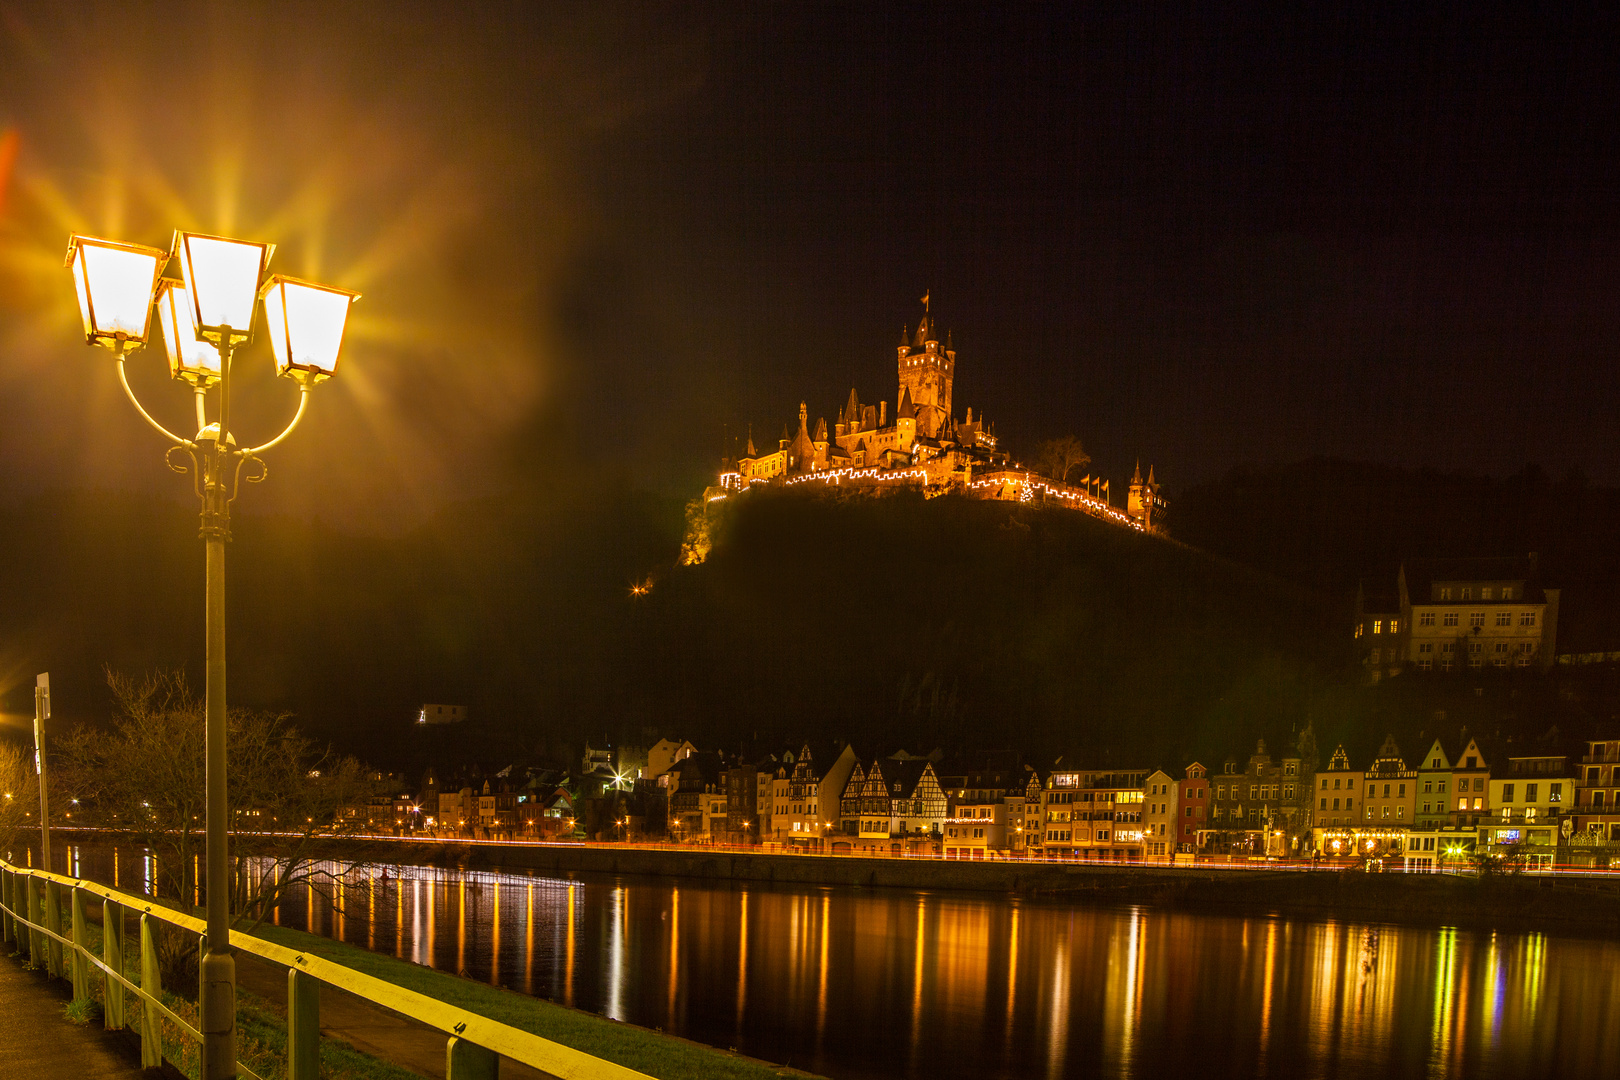 Nachtstimmung in Cochem a.d. Mosel